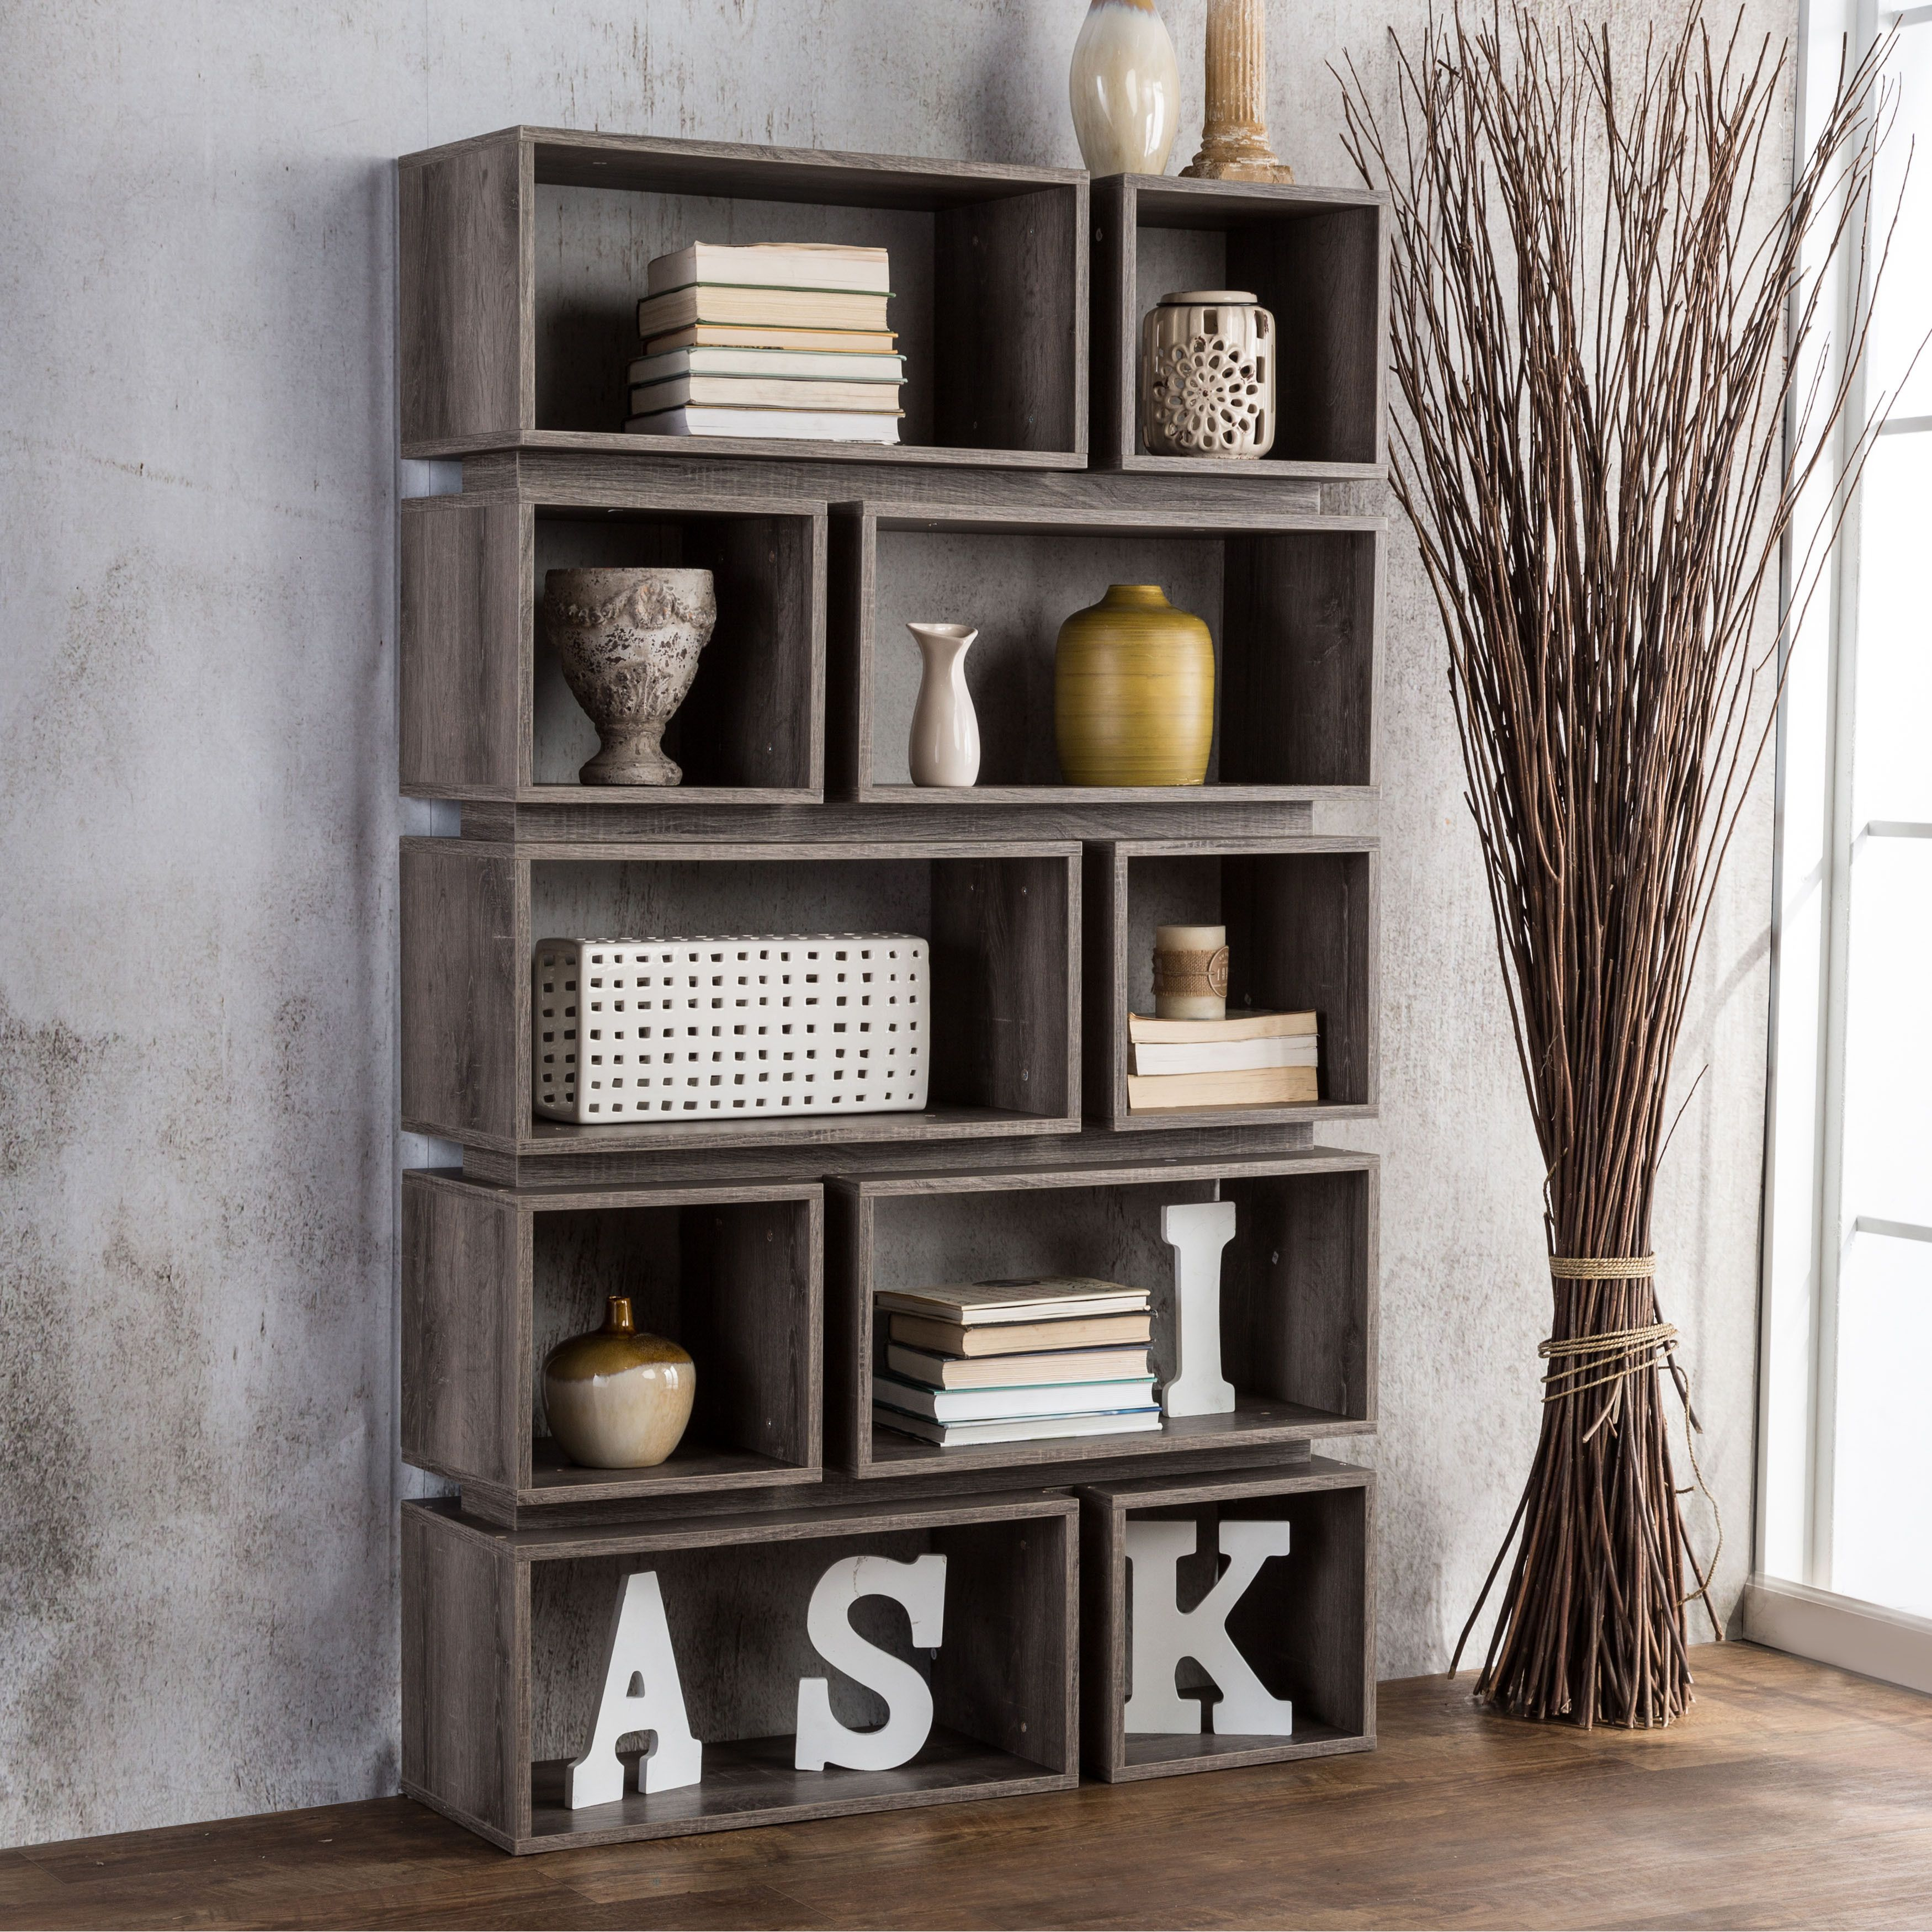 divider furniture kayla mn taupe open bookshelf p look office bookcase bookcases modern in room dark reclaimed